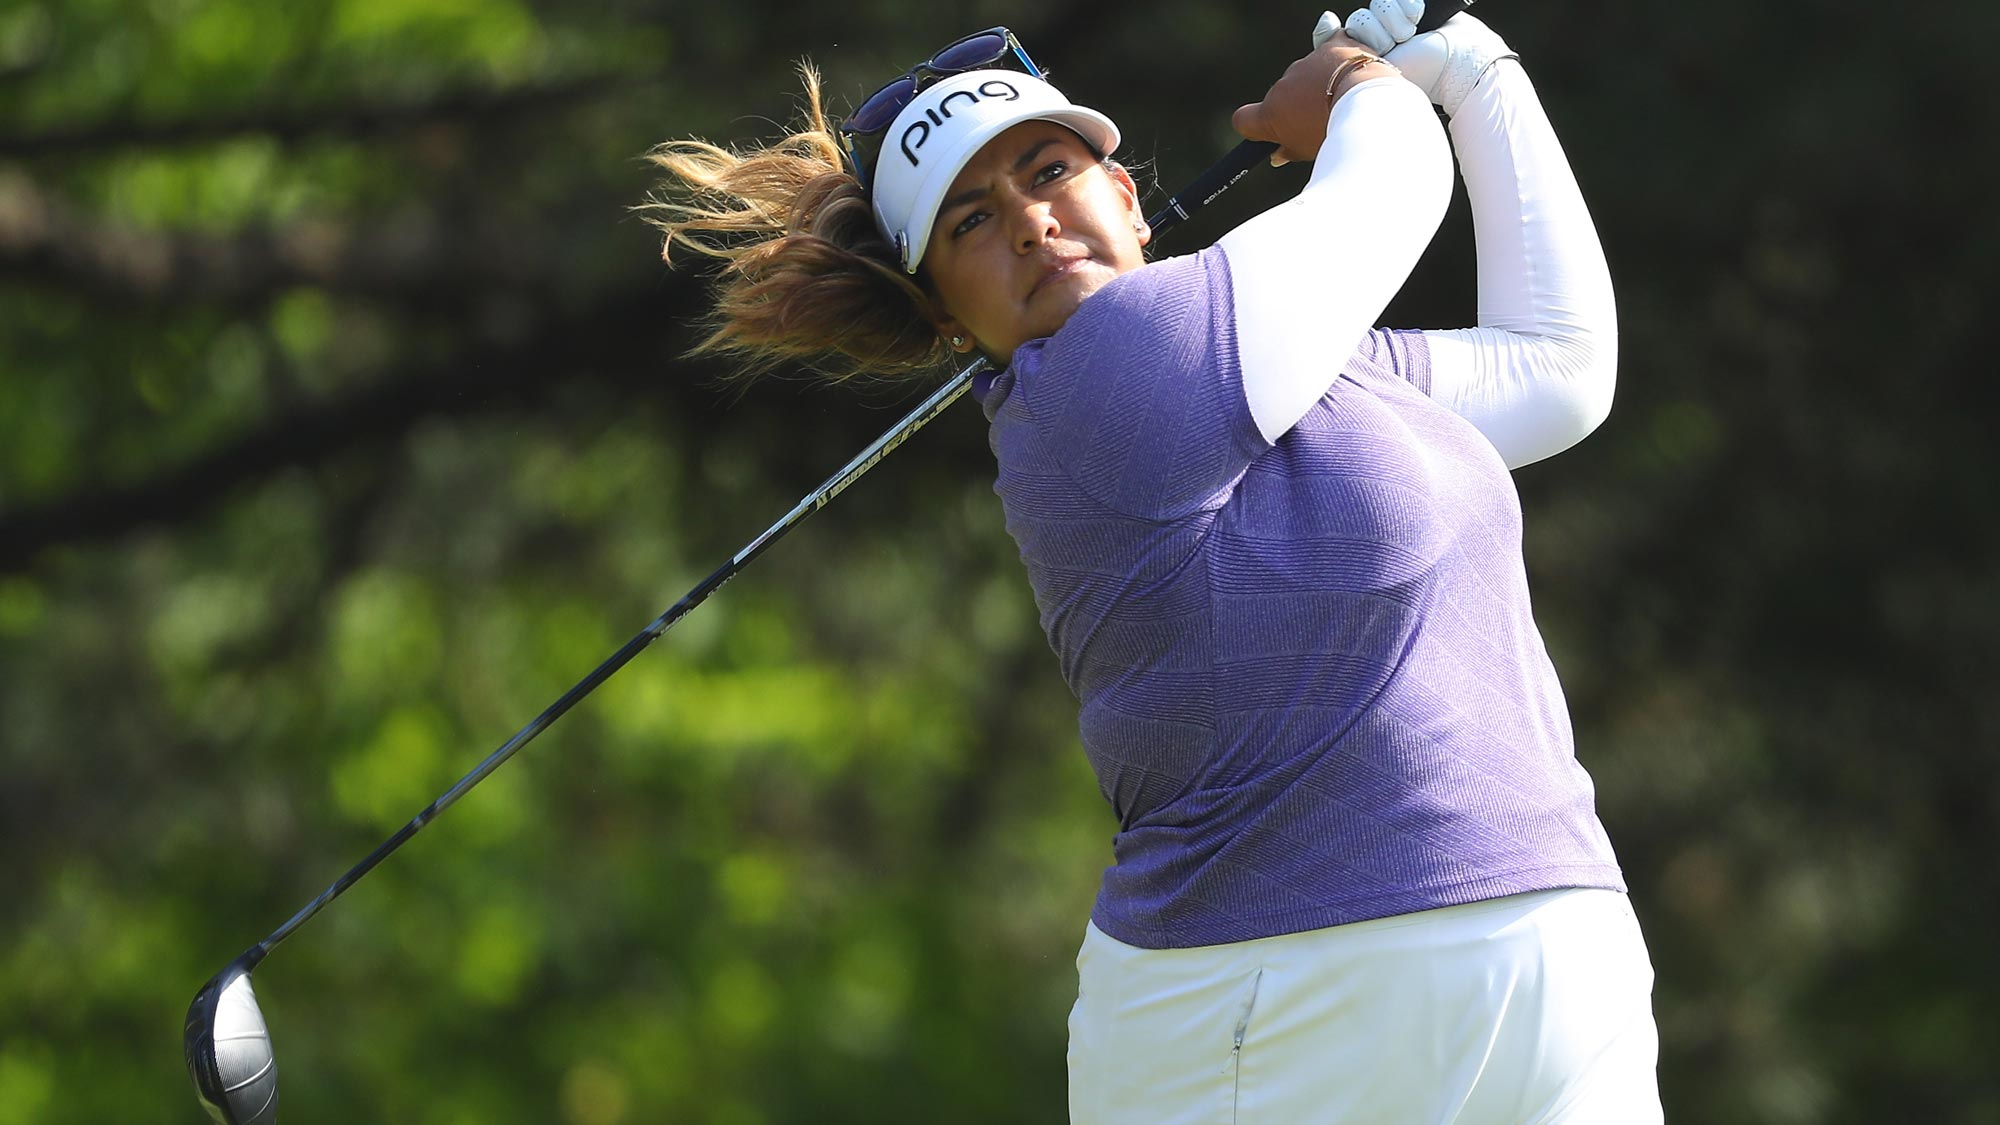 Lizette Salas hits her drive on the second hole during the final round of the 2018 KPMG Women's PGA Championship